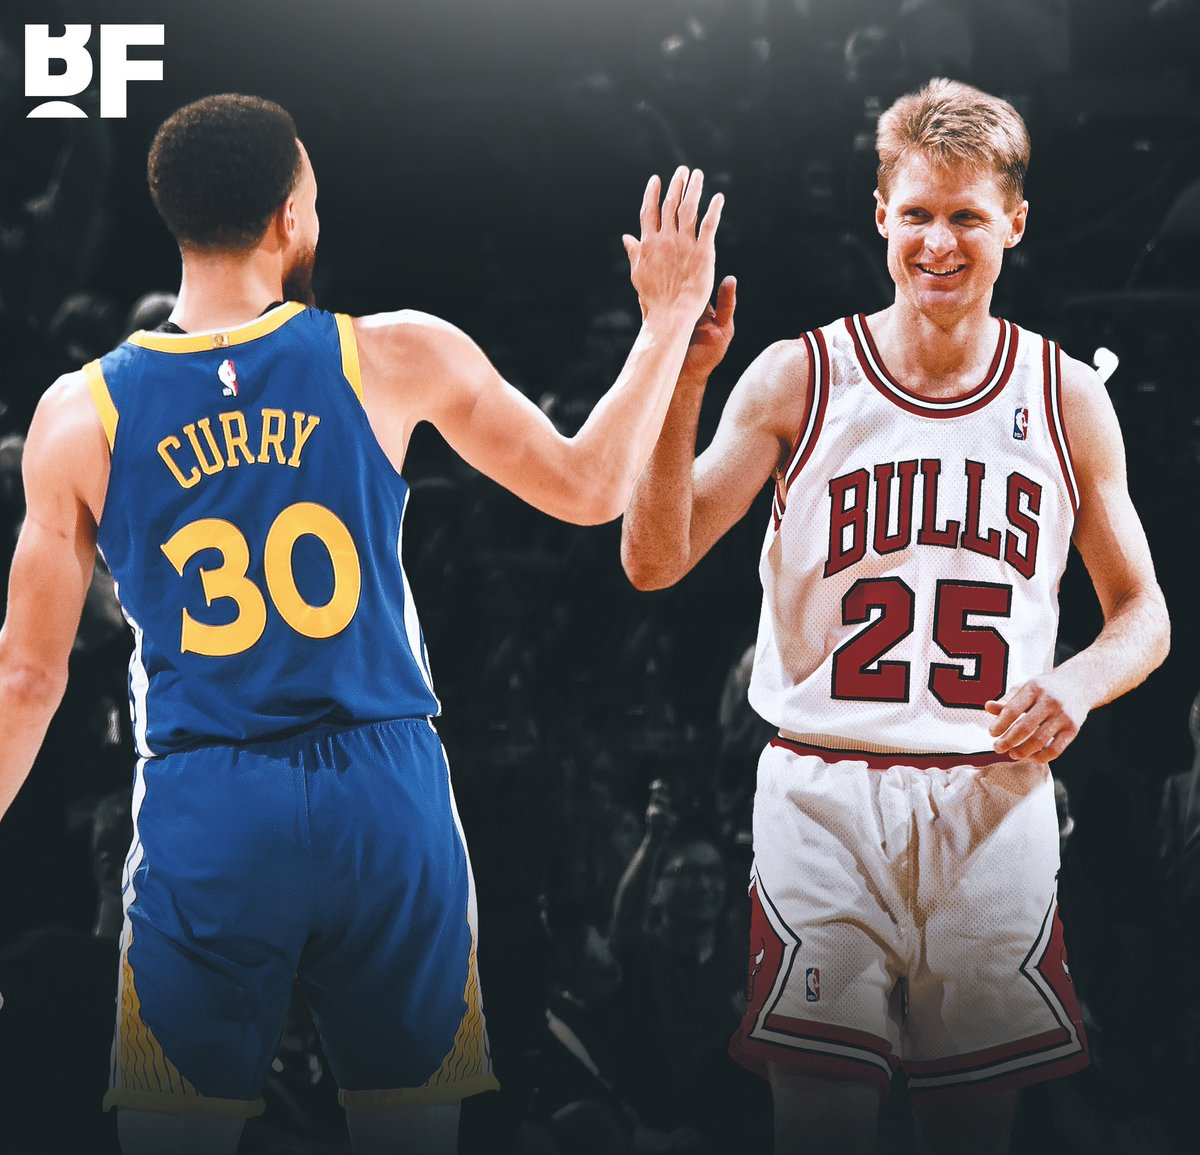 . @SteveKerr made 5 @NBA finals as a point guard, and has now led his point guard @StephenCurry30 to 5 NBA finals.